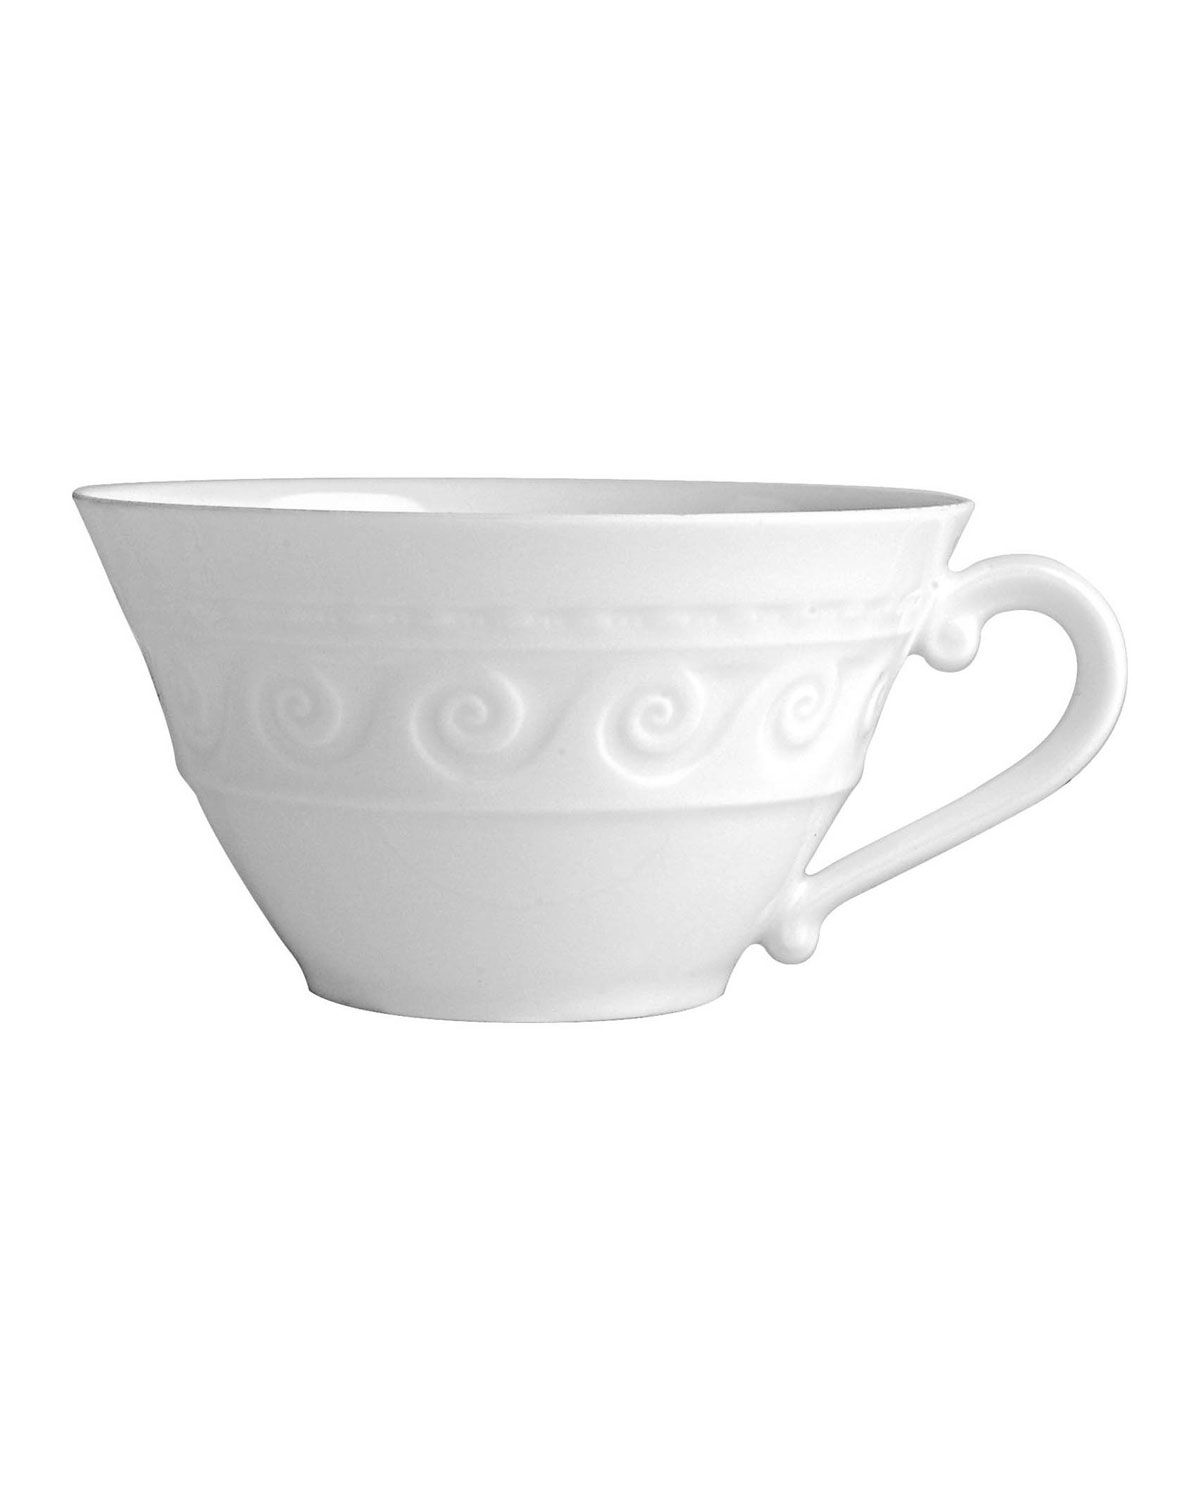 Bernardaud Louvre Teacup